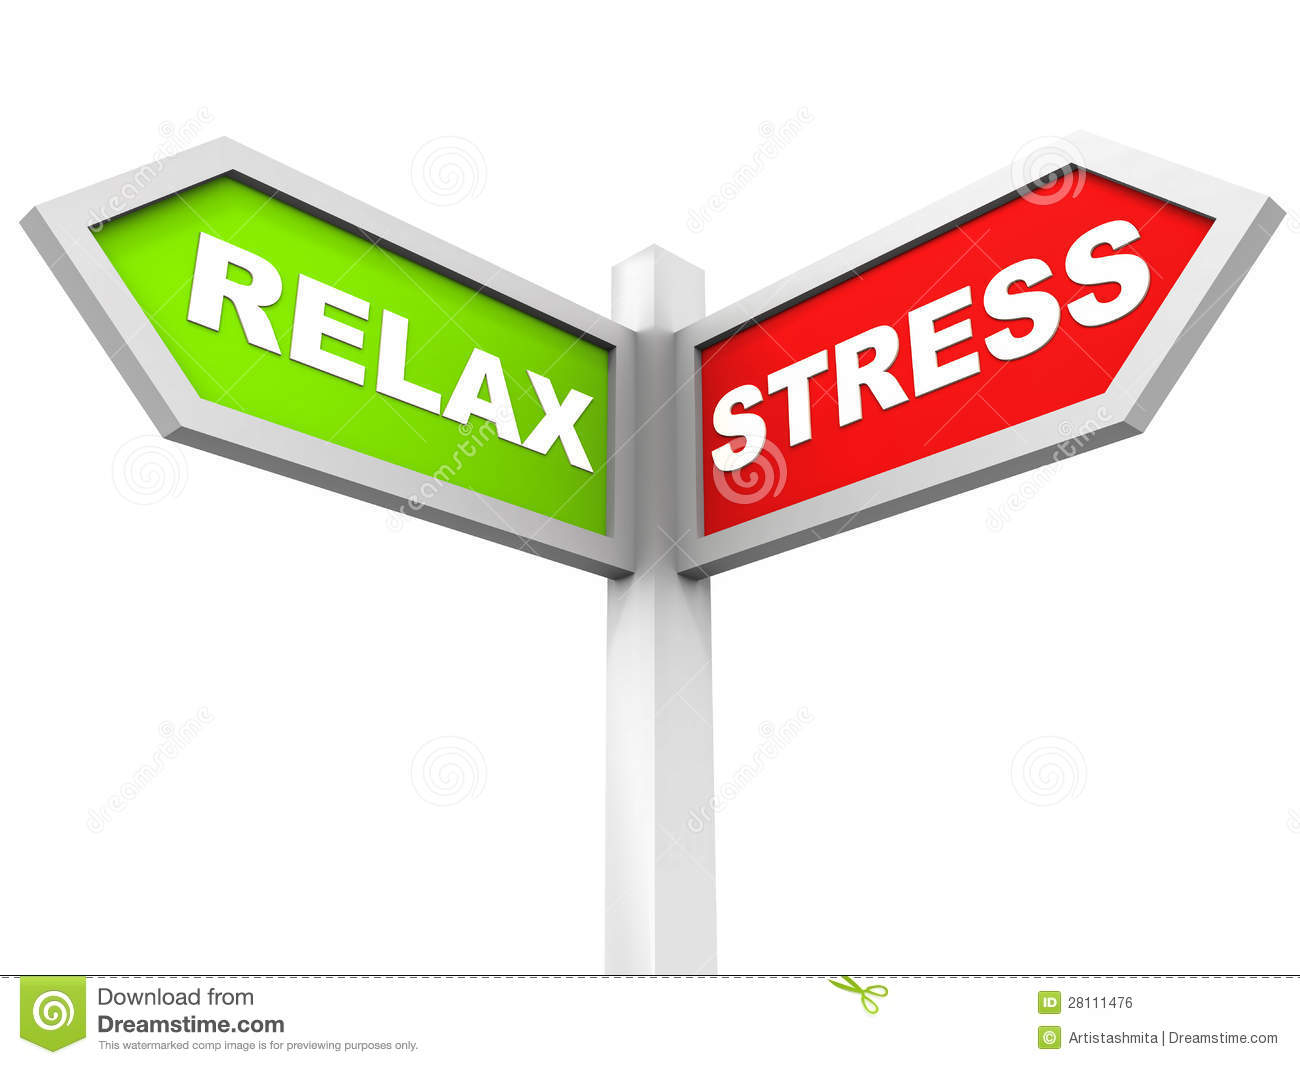 Choice of stress or relax, street sign with words relax in green and ...